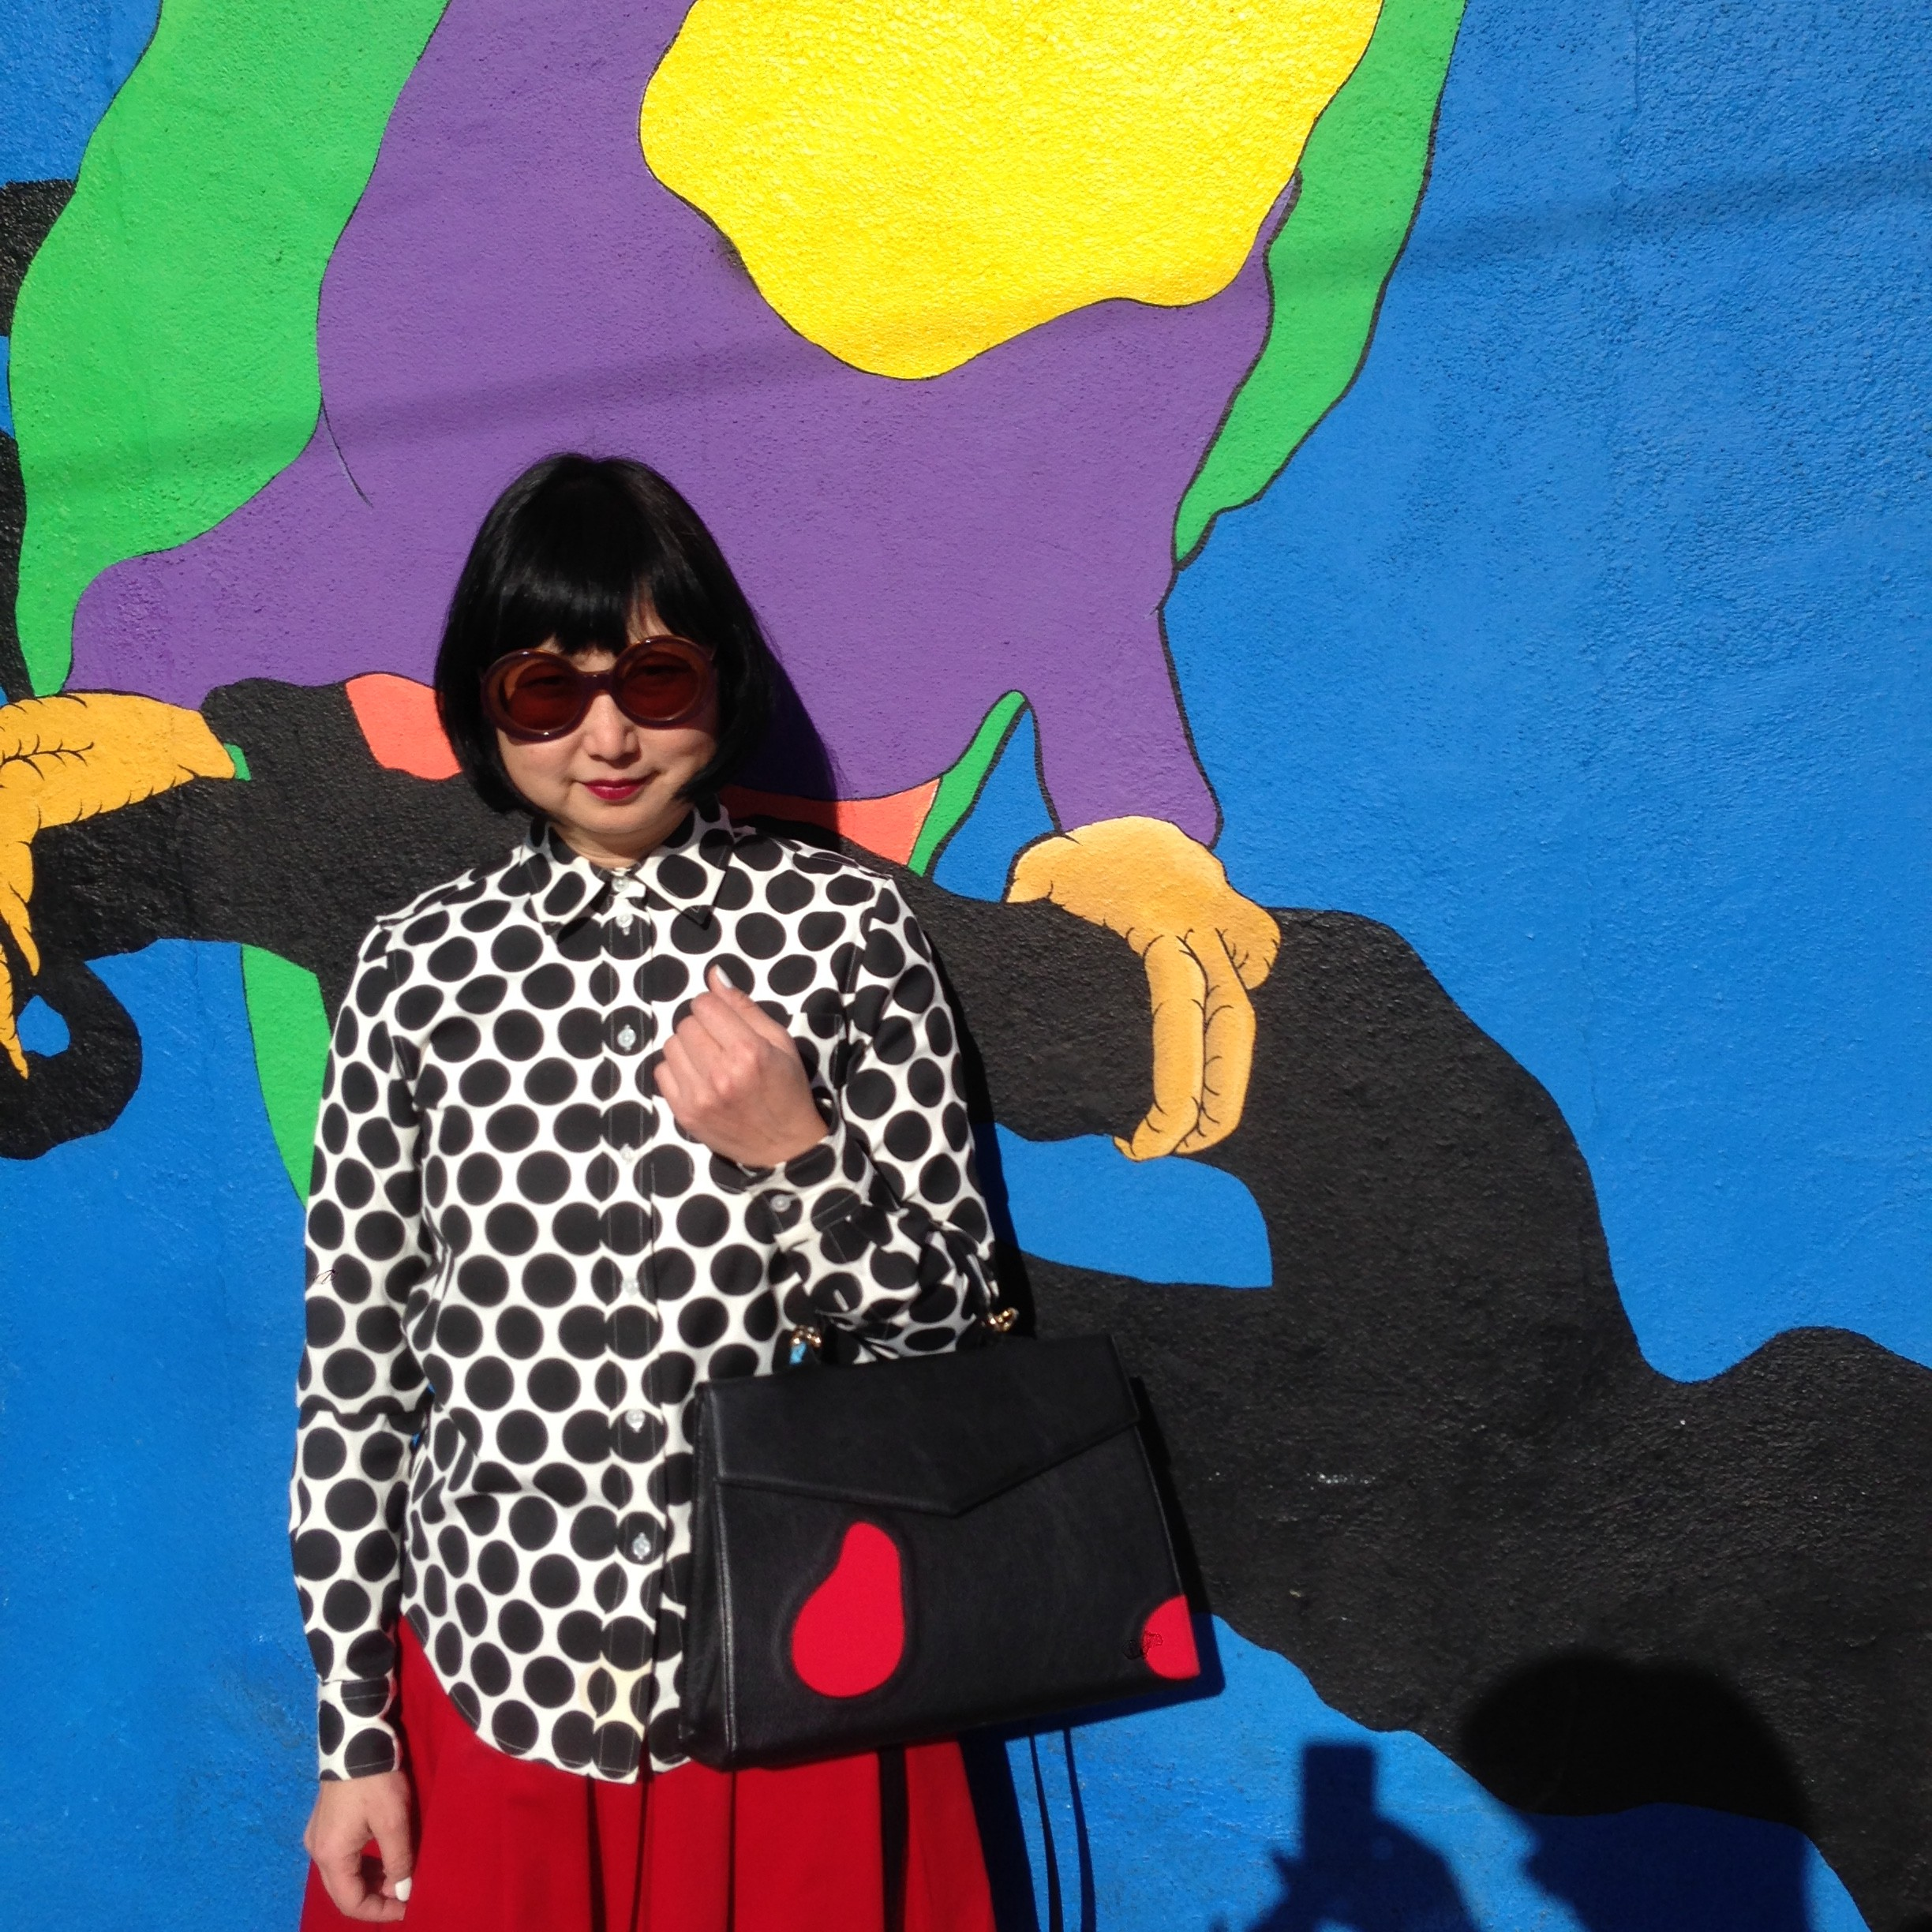 Next door to Tacos Villa Corona is a bird shop with parrots in the window.  This is their colorful parrot mural.  This is the outfit Alexander picked out for me.  He's partial to black and white I notice, but I love how he tied in the red in the skirt to go with the red of my bag.  It's helpful to get cats from an art gallery— they seem to have a good eye for color.